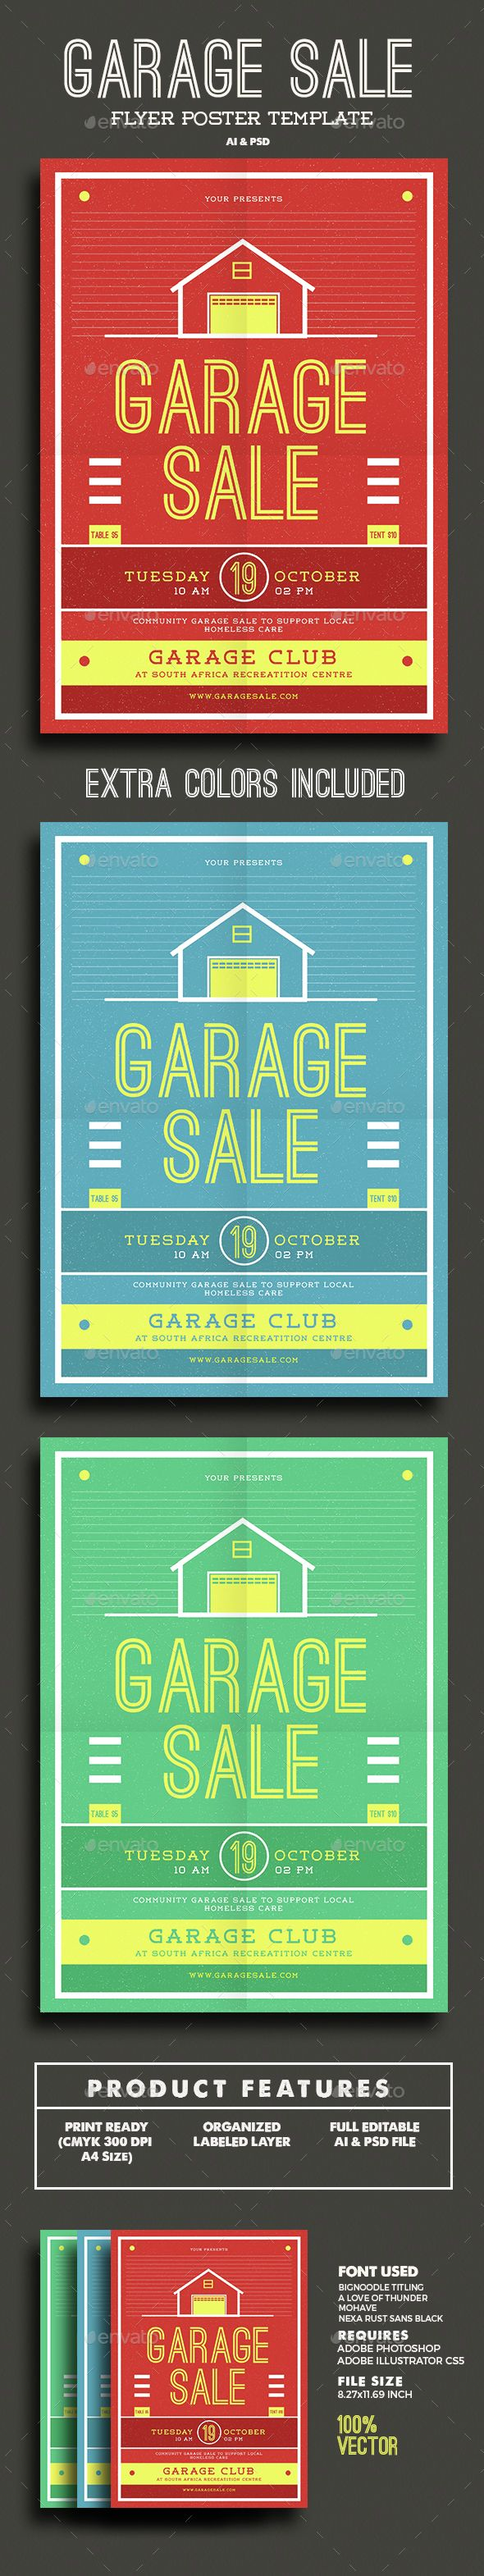 Garage Sale Flyer Template PSD, Vector AI. Download here: http://graphicriver.net/item/garage-sale-flyer/15450470?ref=ksioks